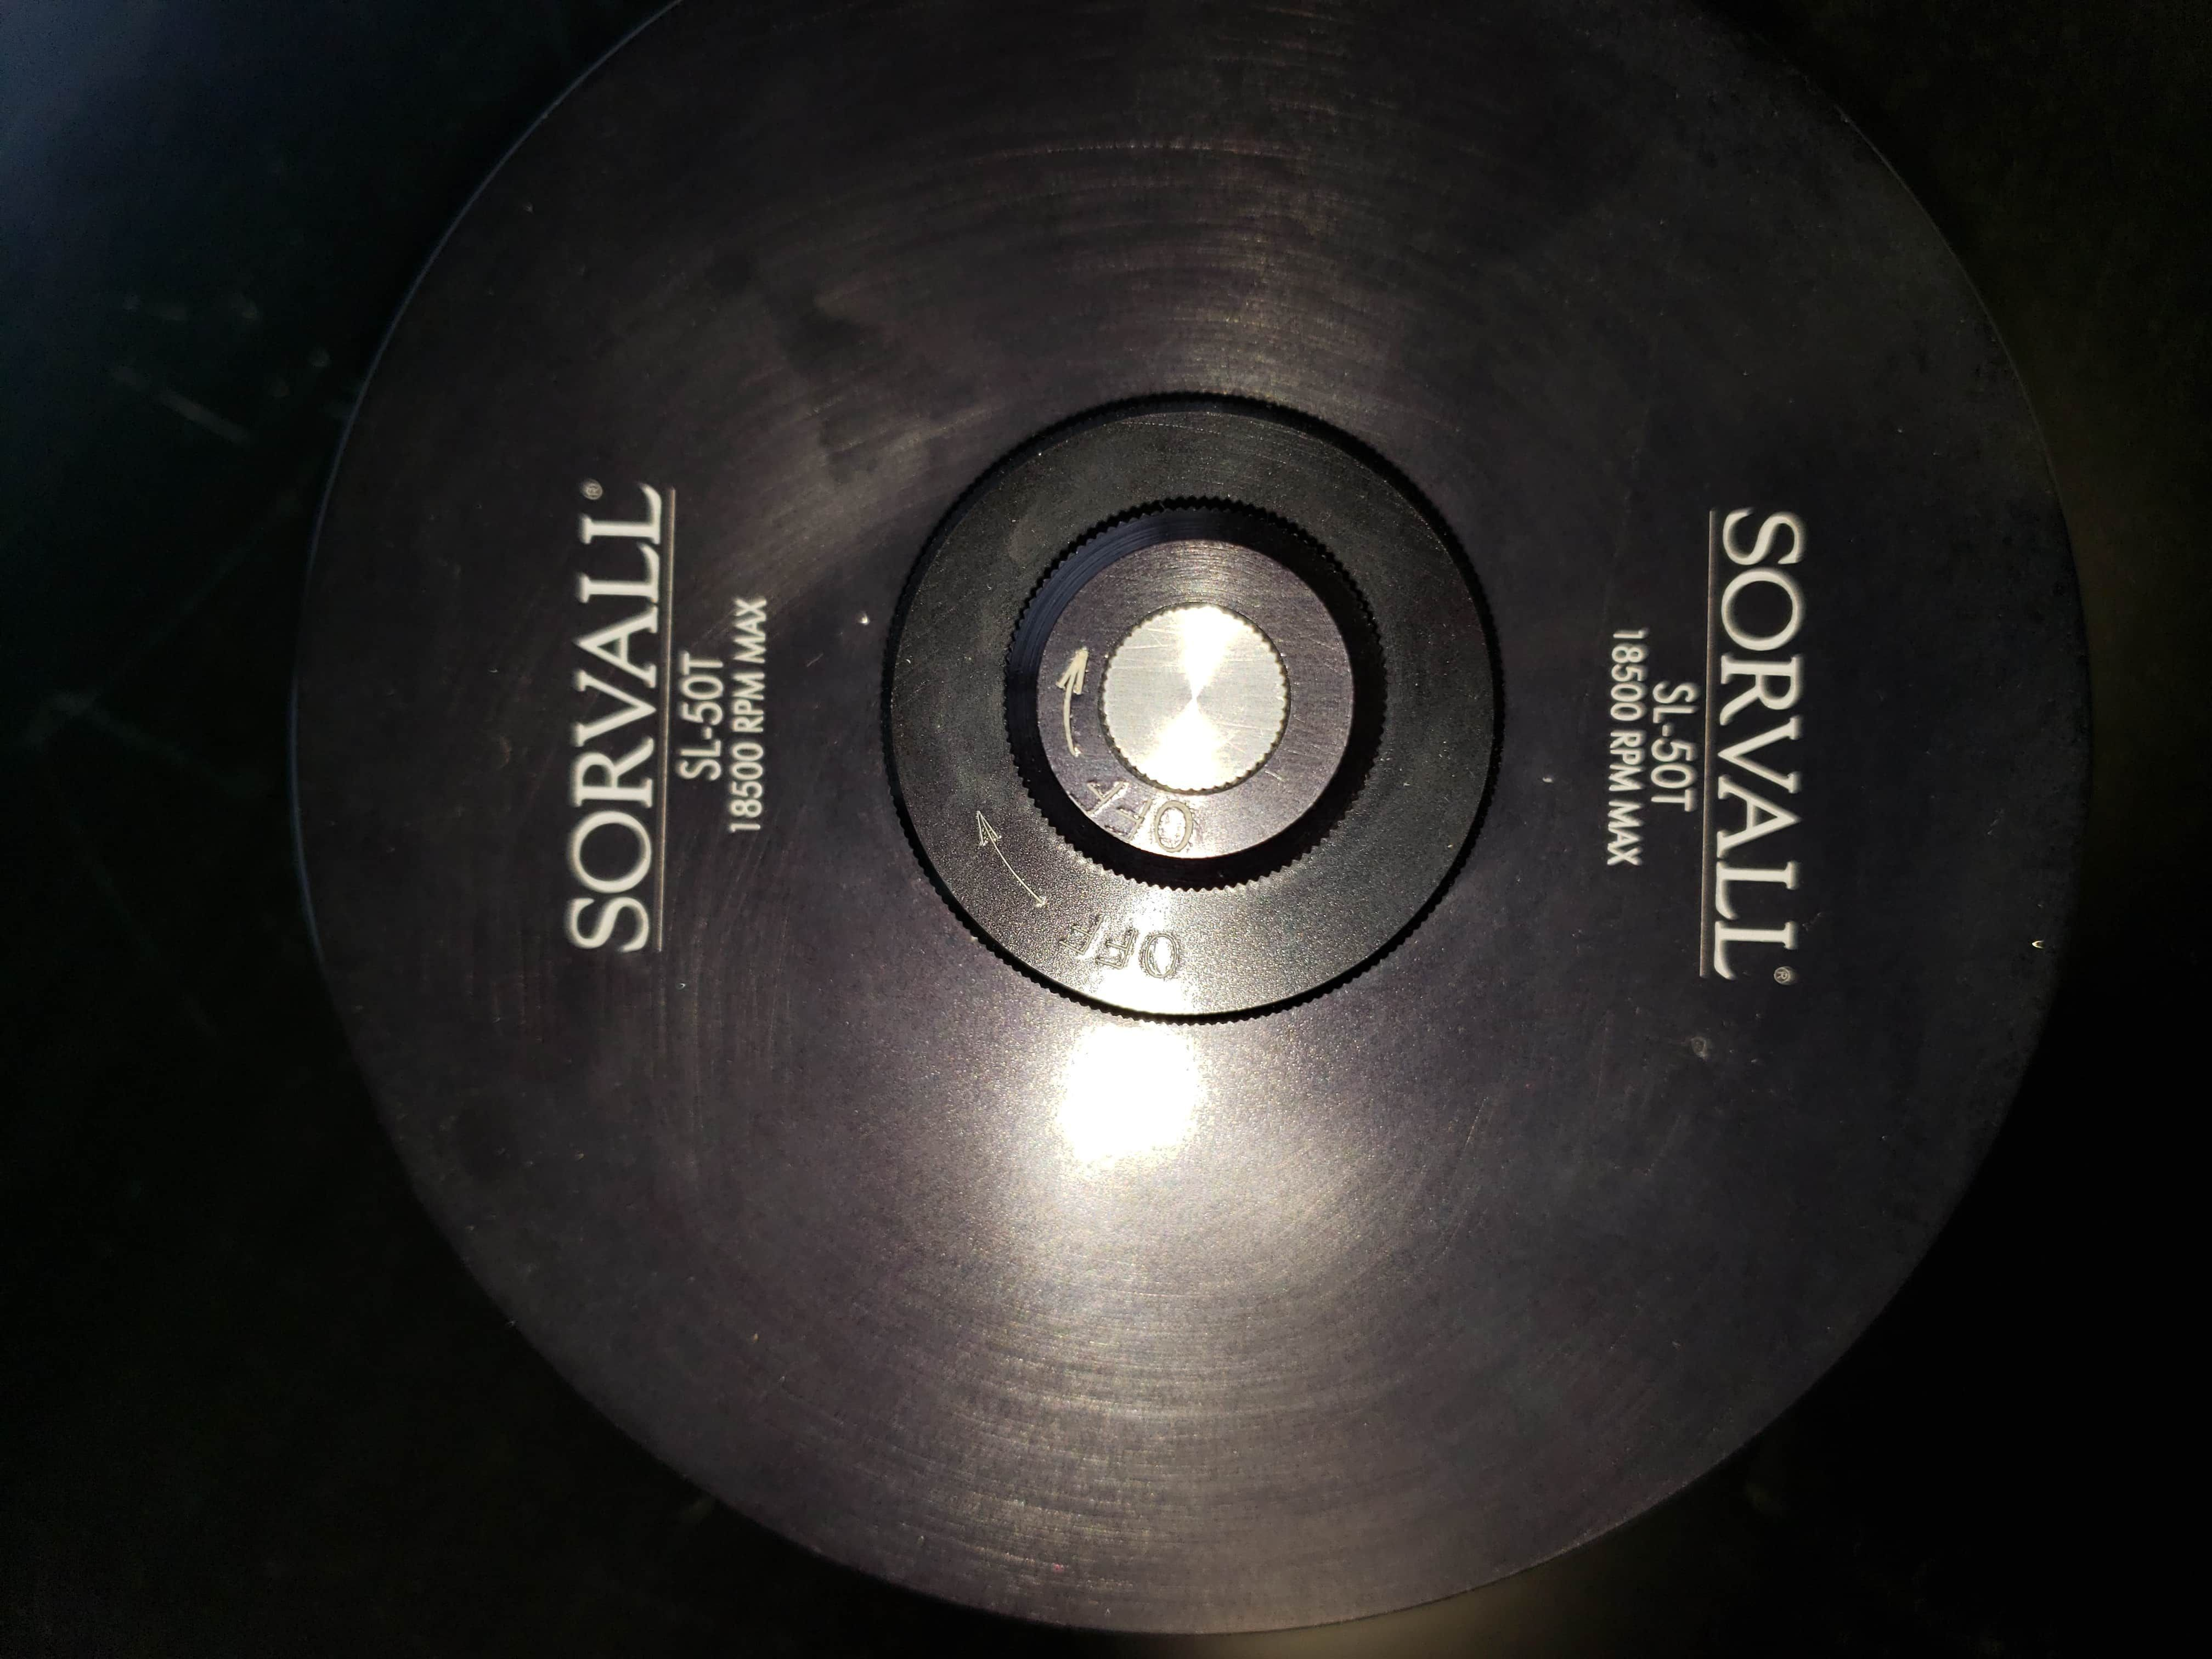 Sorvall SL-50T fixed angle rotor SALE PRICED $500